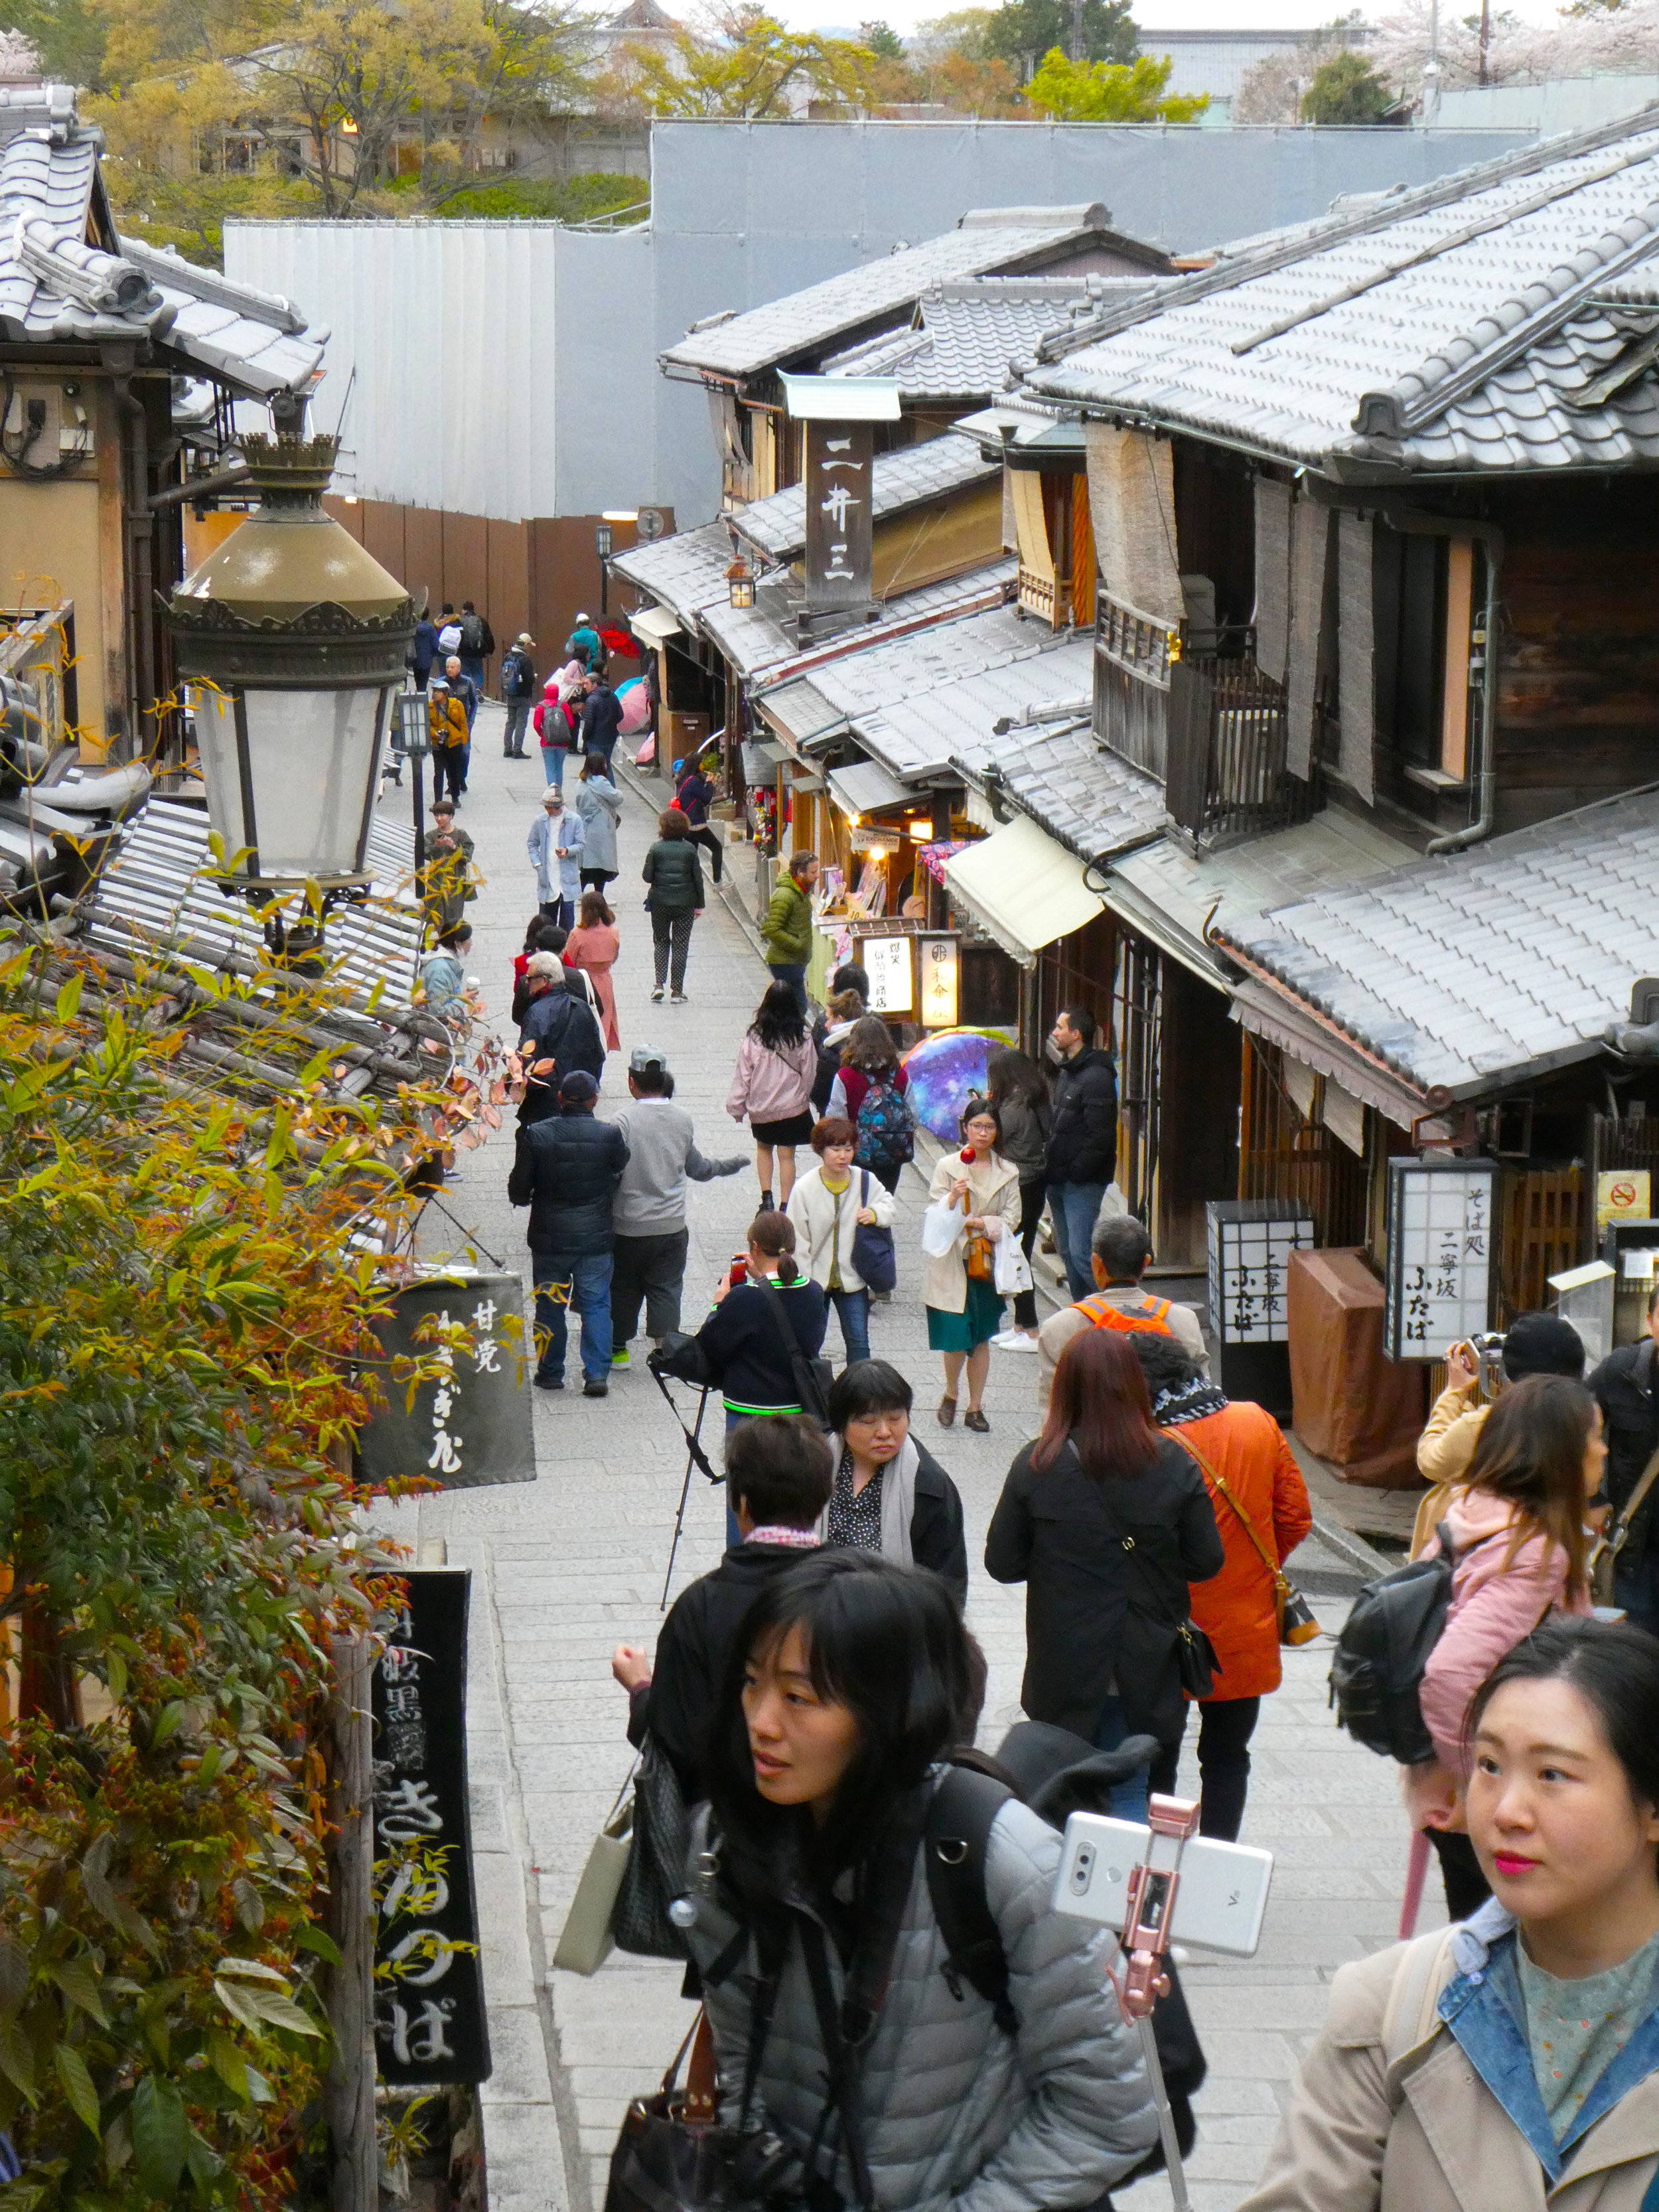 In the district near the Kiyomizu-dera temple, Kyoto.